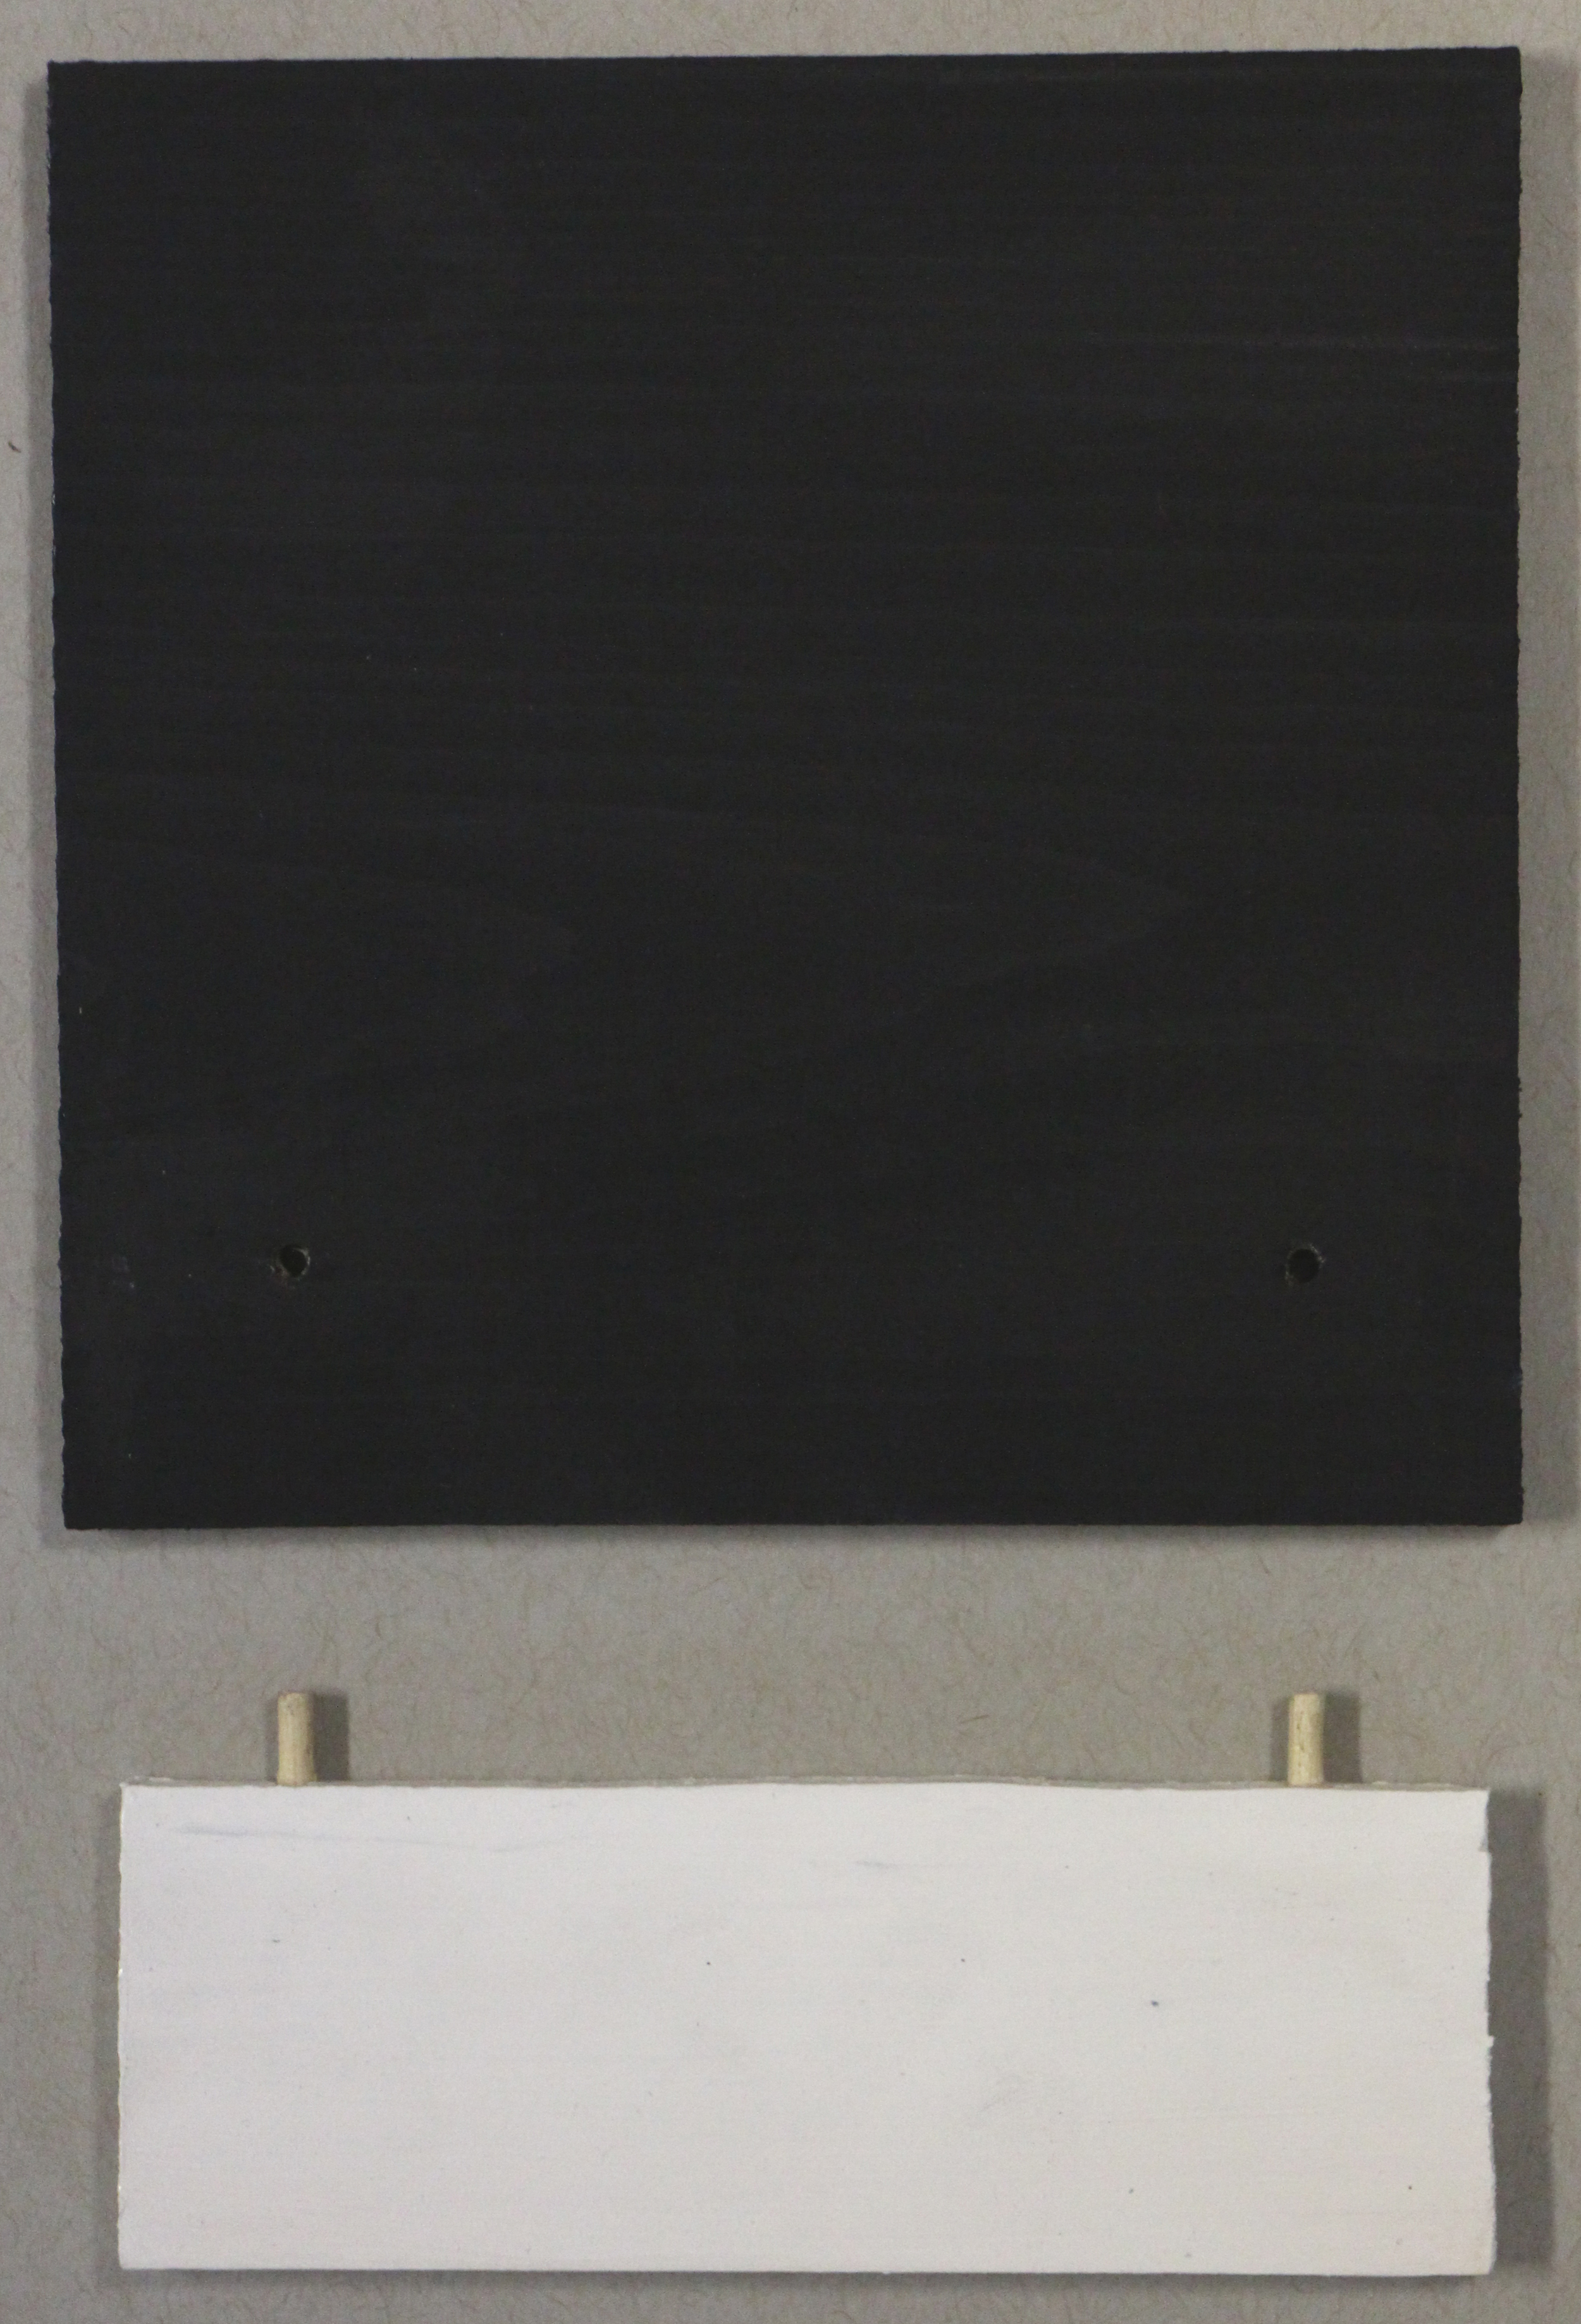 Luke Hampton    Untitled   gesso on wood  4 x 4 x 1.5 inches  edition of 10 (various prices)